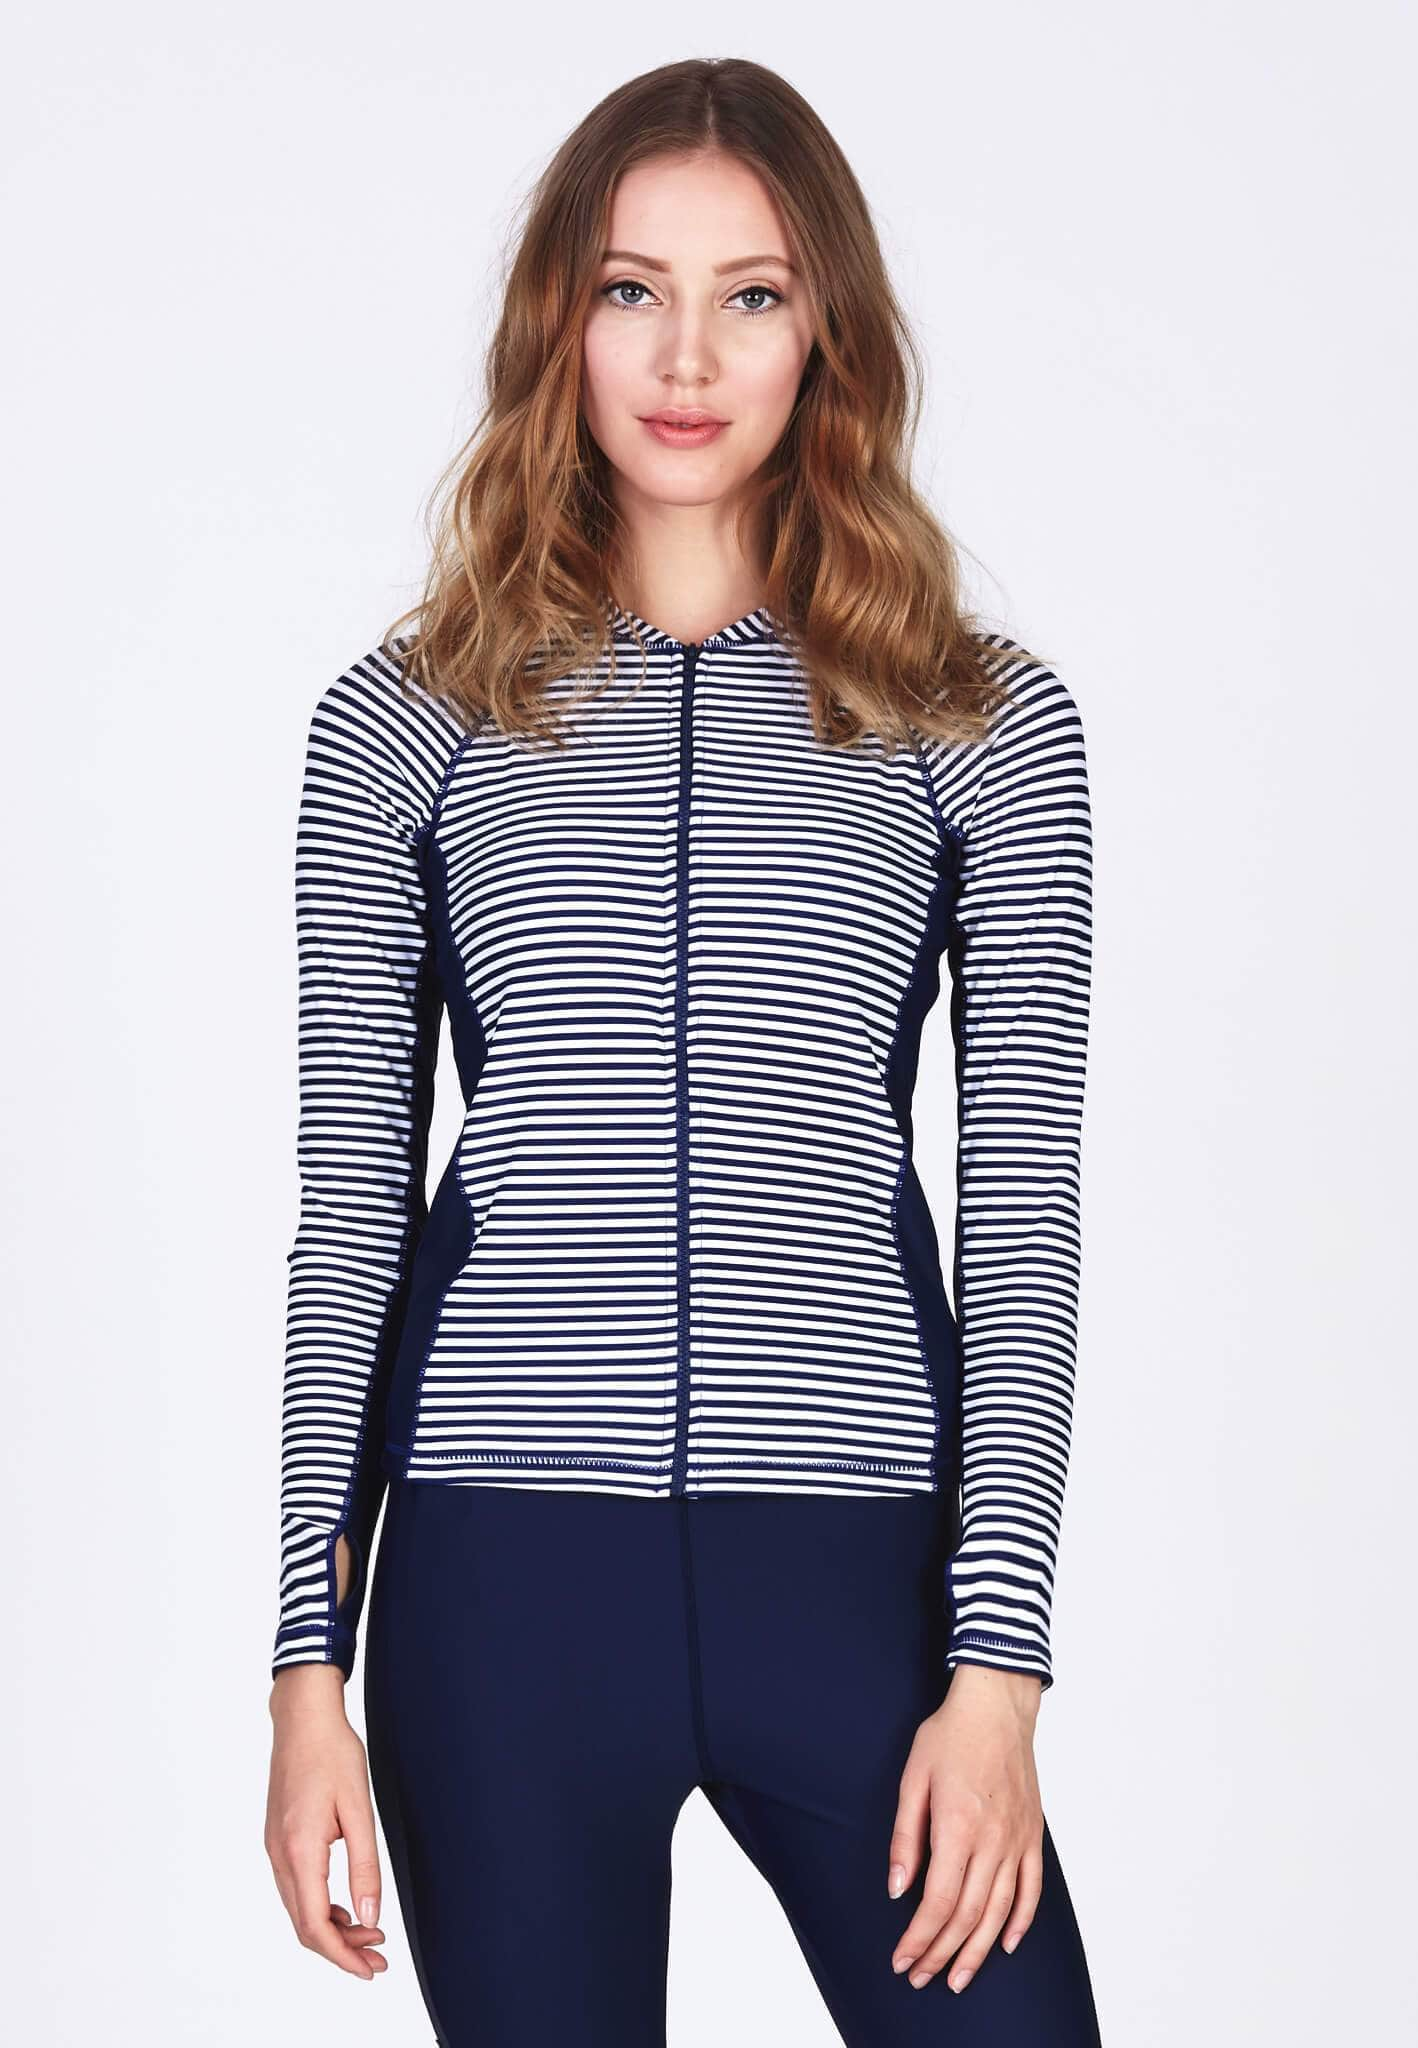 UPF50+ Zip Front Rashguard in Stripes/ Navy - FUNFIT